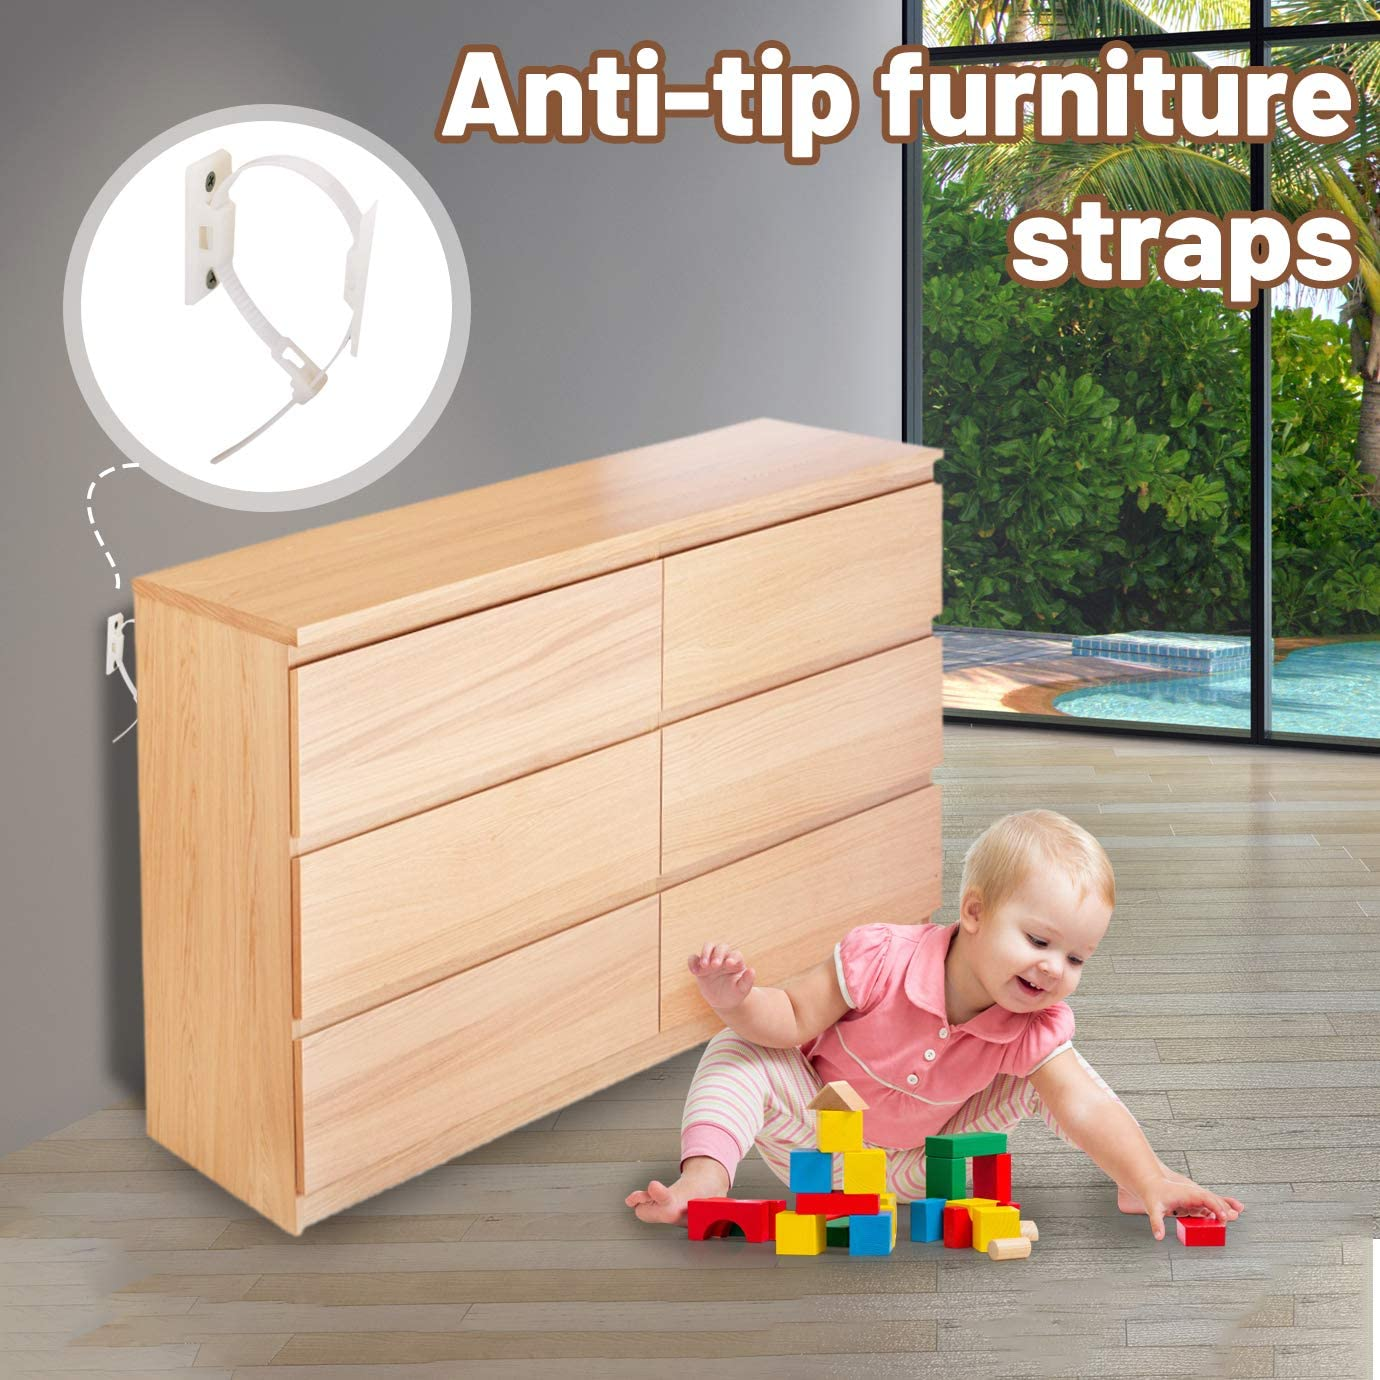 QUACOWW 16 Pieces Furniture Straps Adjustable Baby Anti-Tip Furniture Anchor Straps Kit Falling Furniture Prevention Device for Bookshelf Dresser